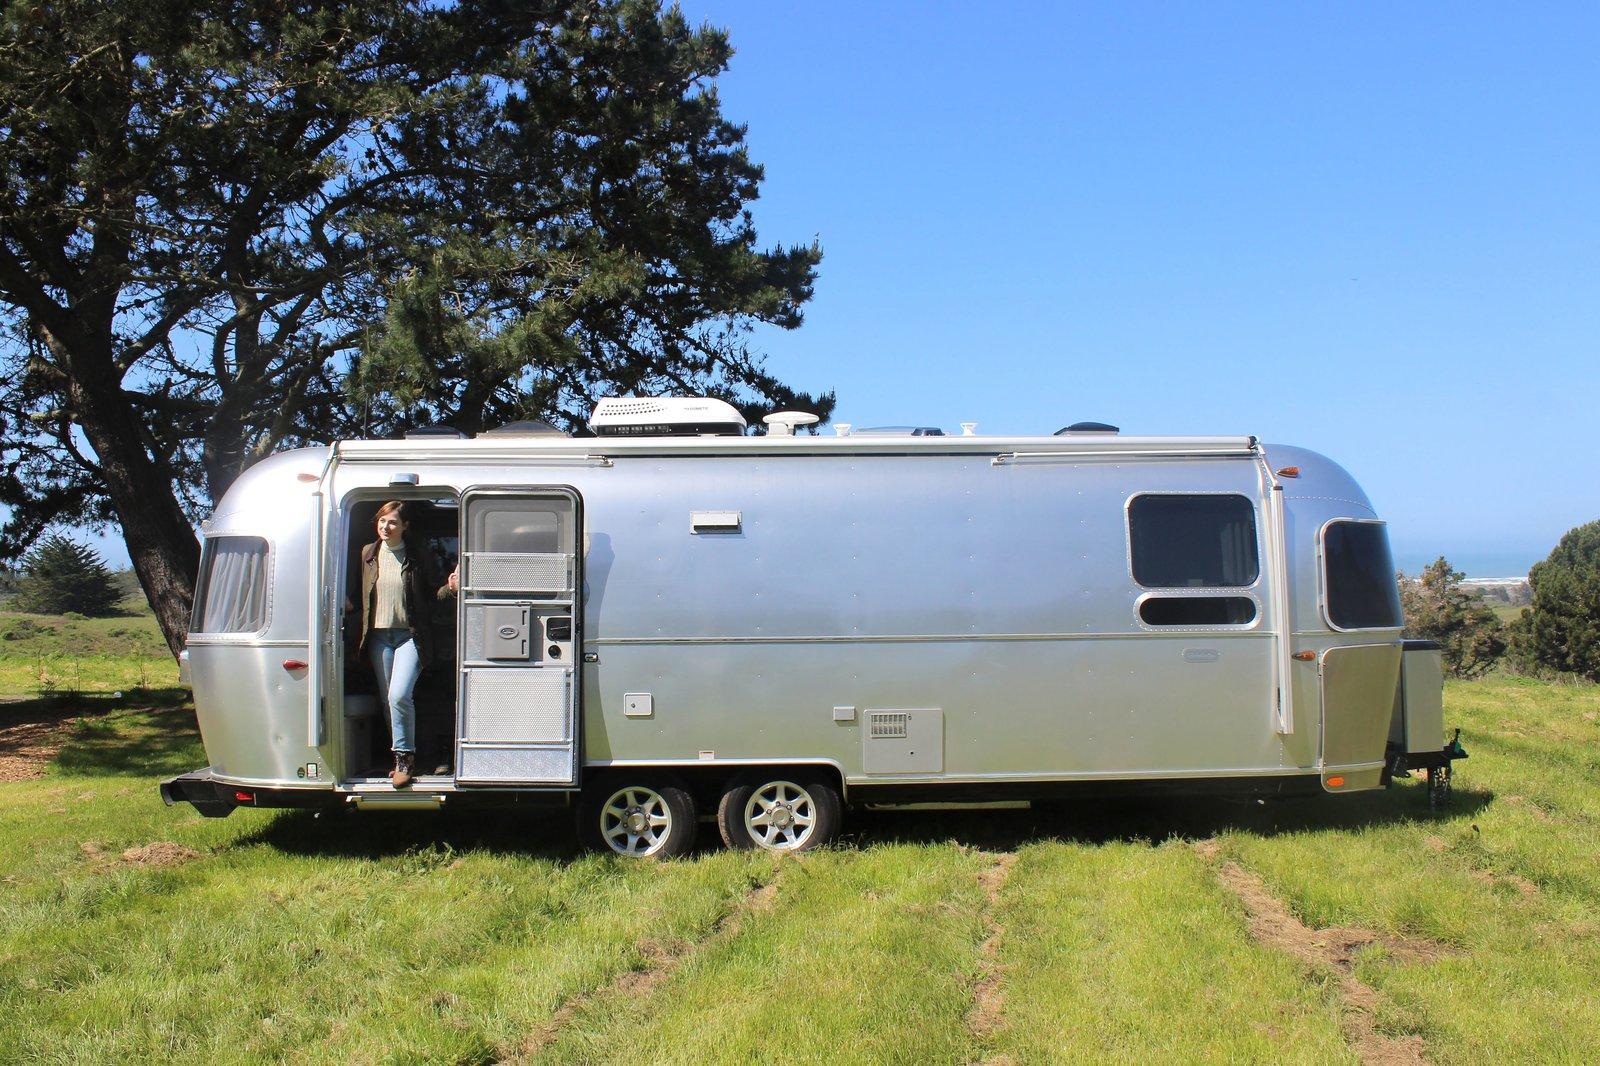 Bodega Bay Or Bust Taking The Airstream Globetrotter To Northern Californias Coastal Gem